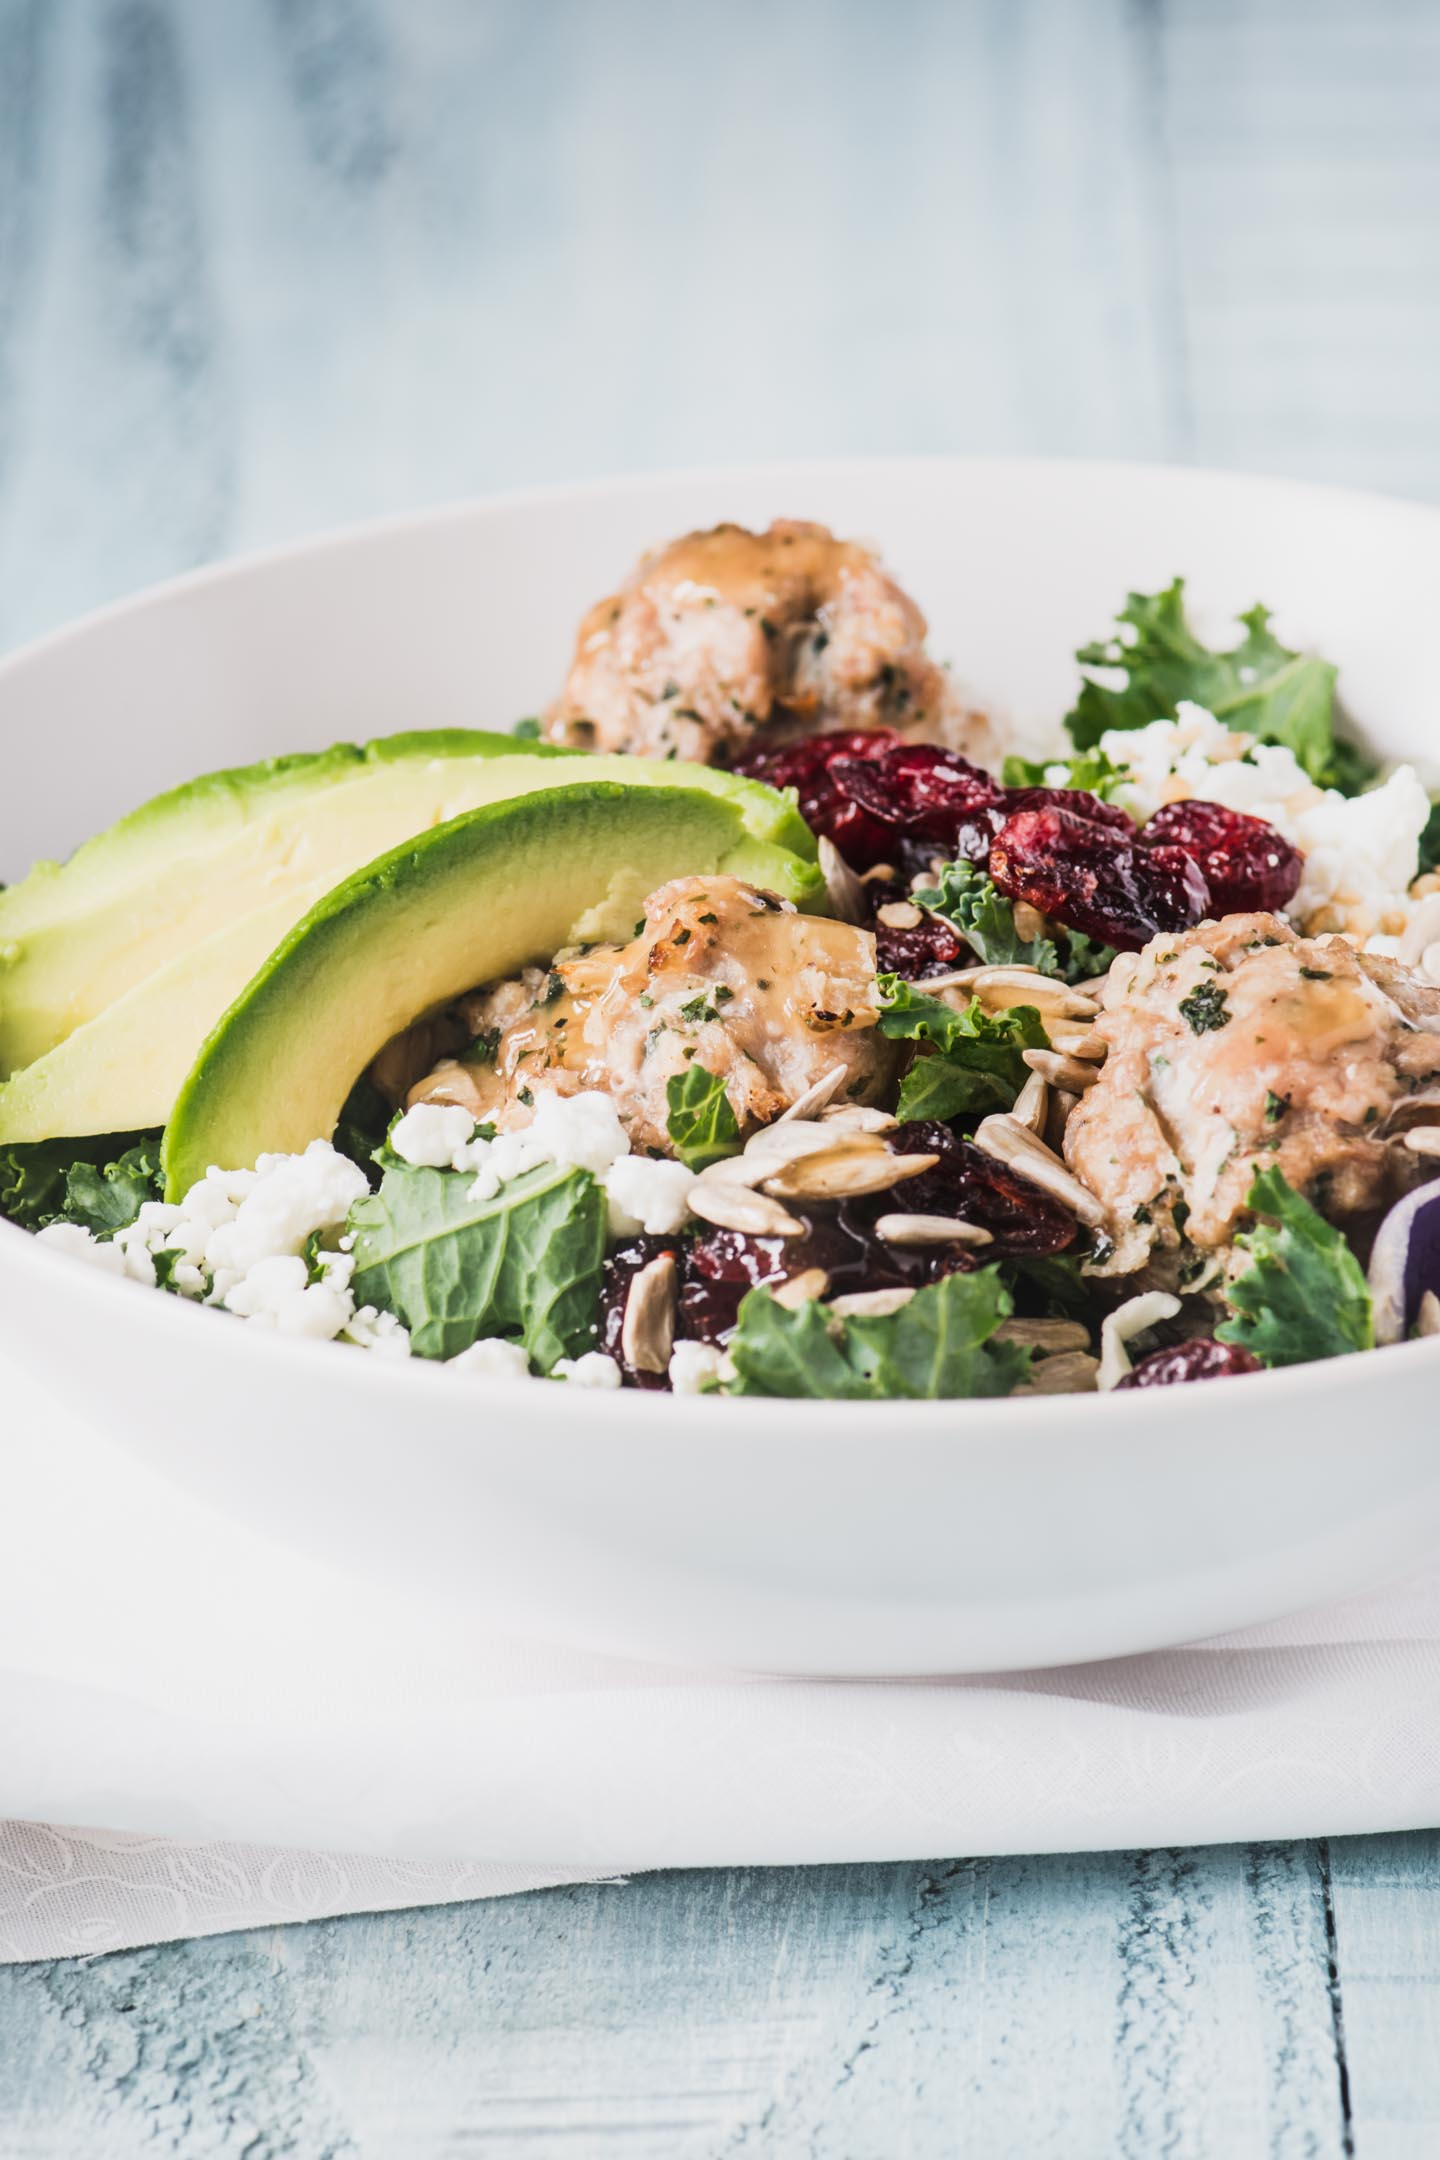 Close-up of kale salad greens topped with turkey meatballs and avocado